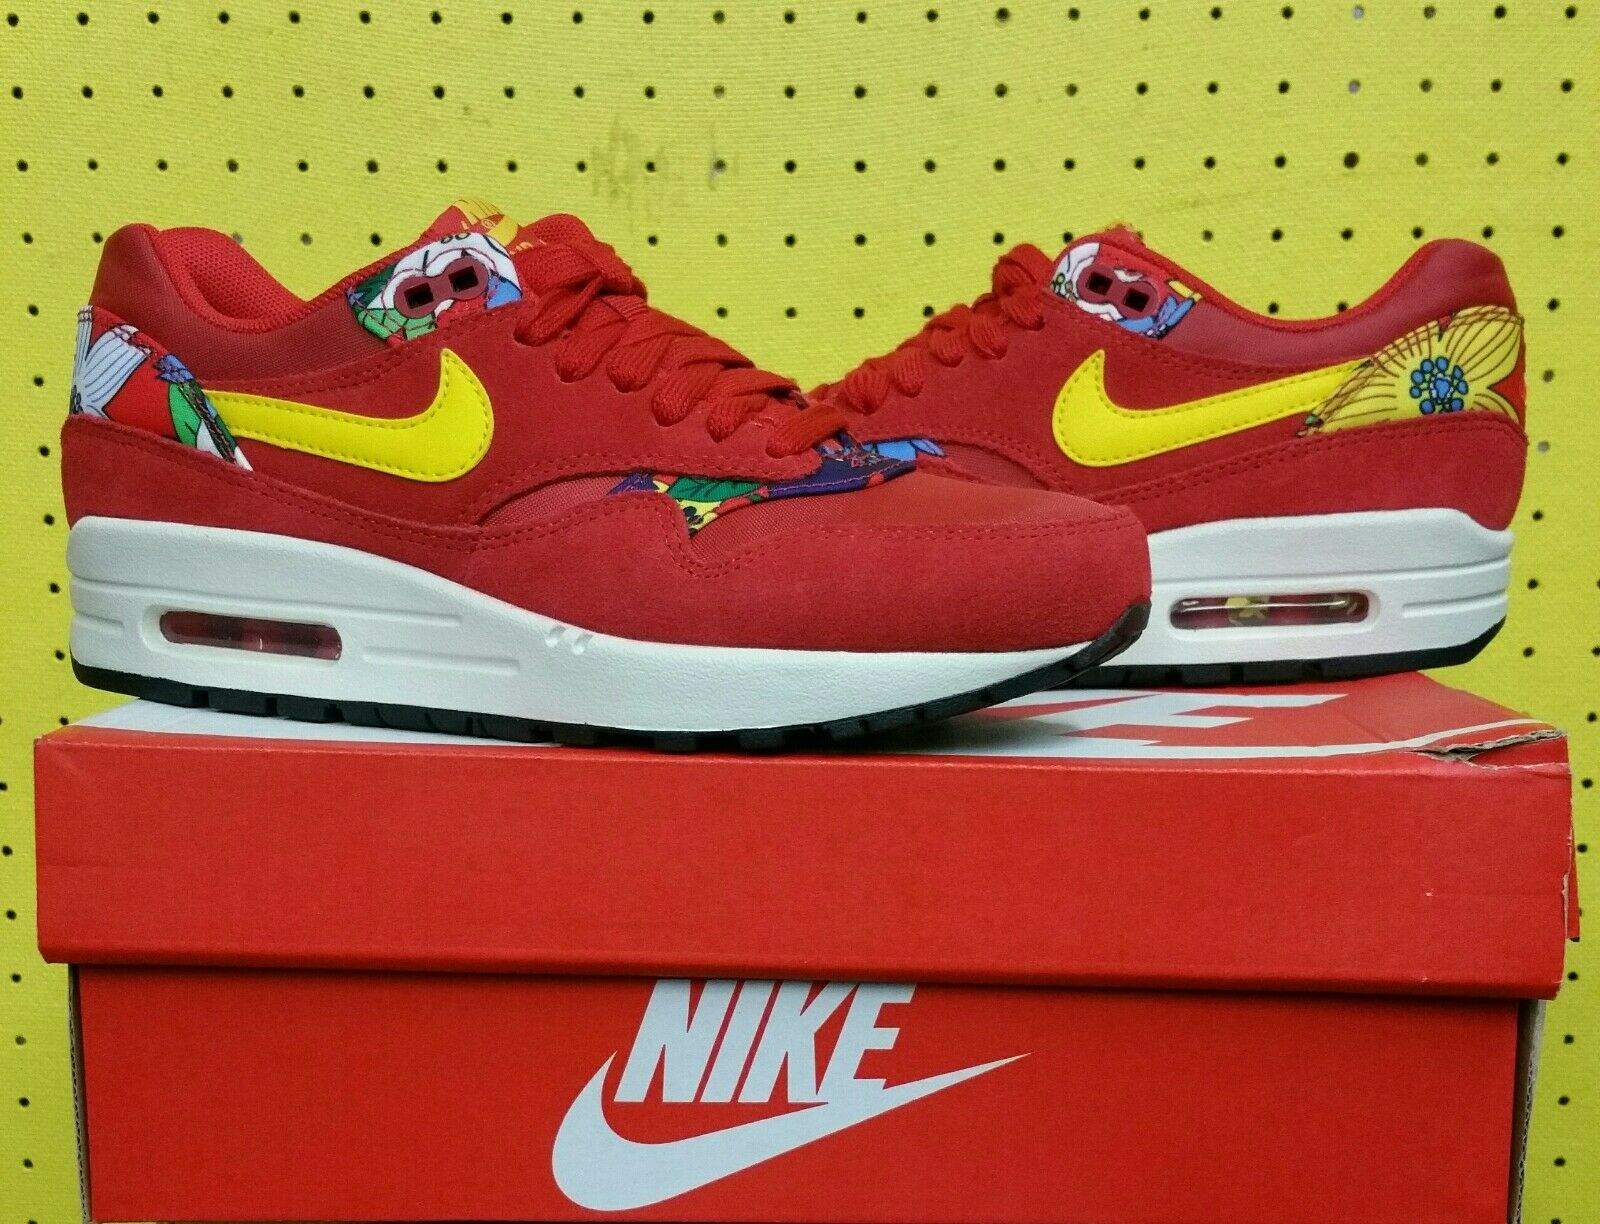 NEW Women's Nike Air Max 1 Print shoes Sz 5.5 Aloha Red Tour Yellow 528898 602